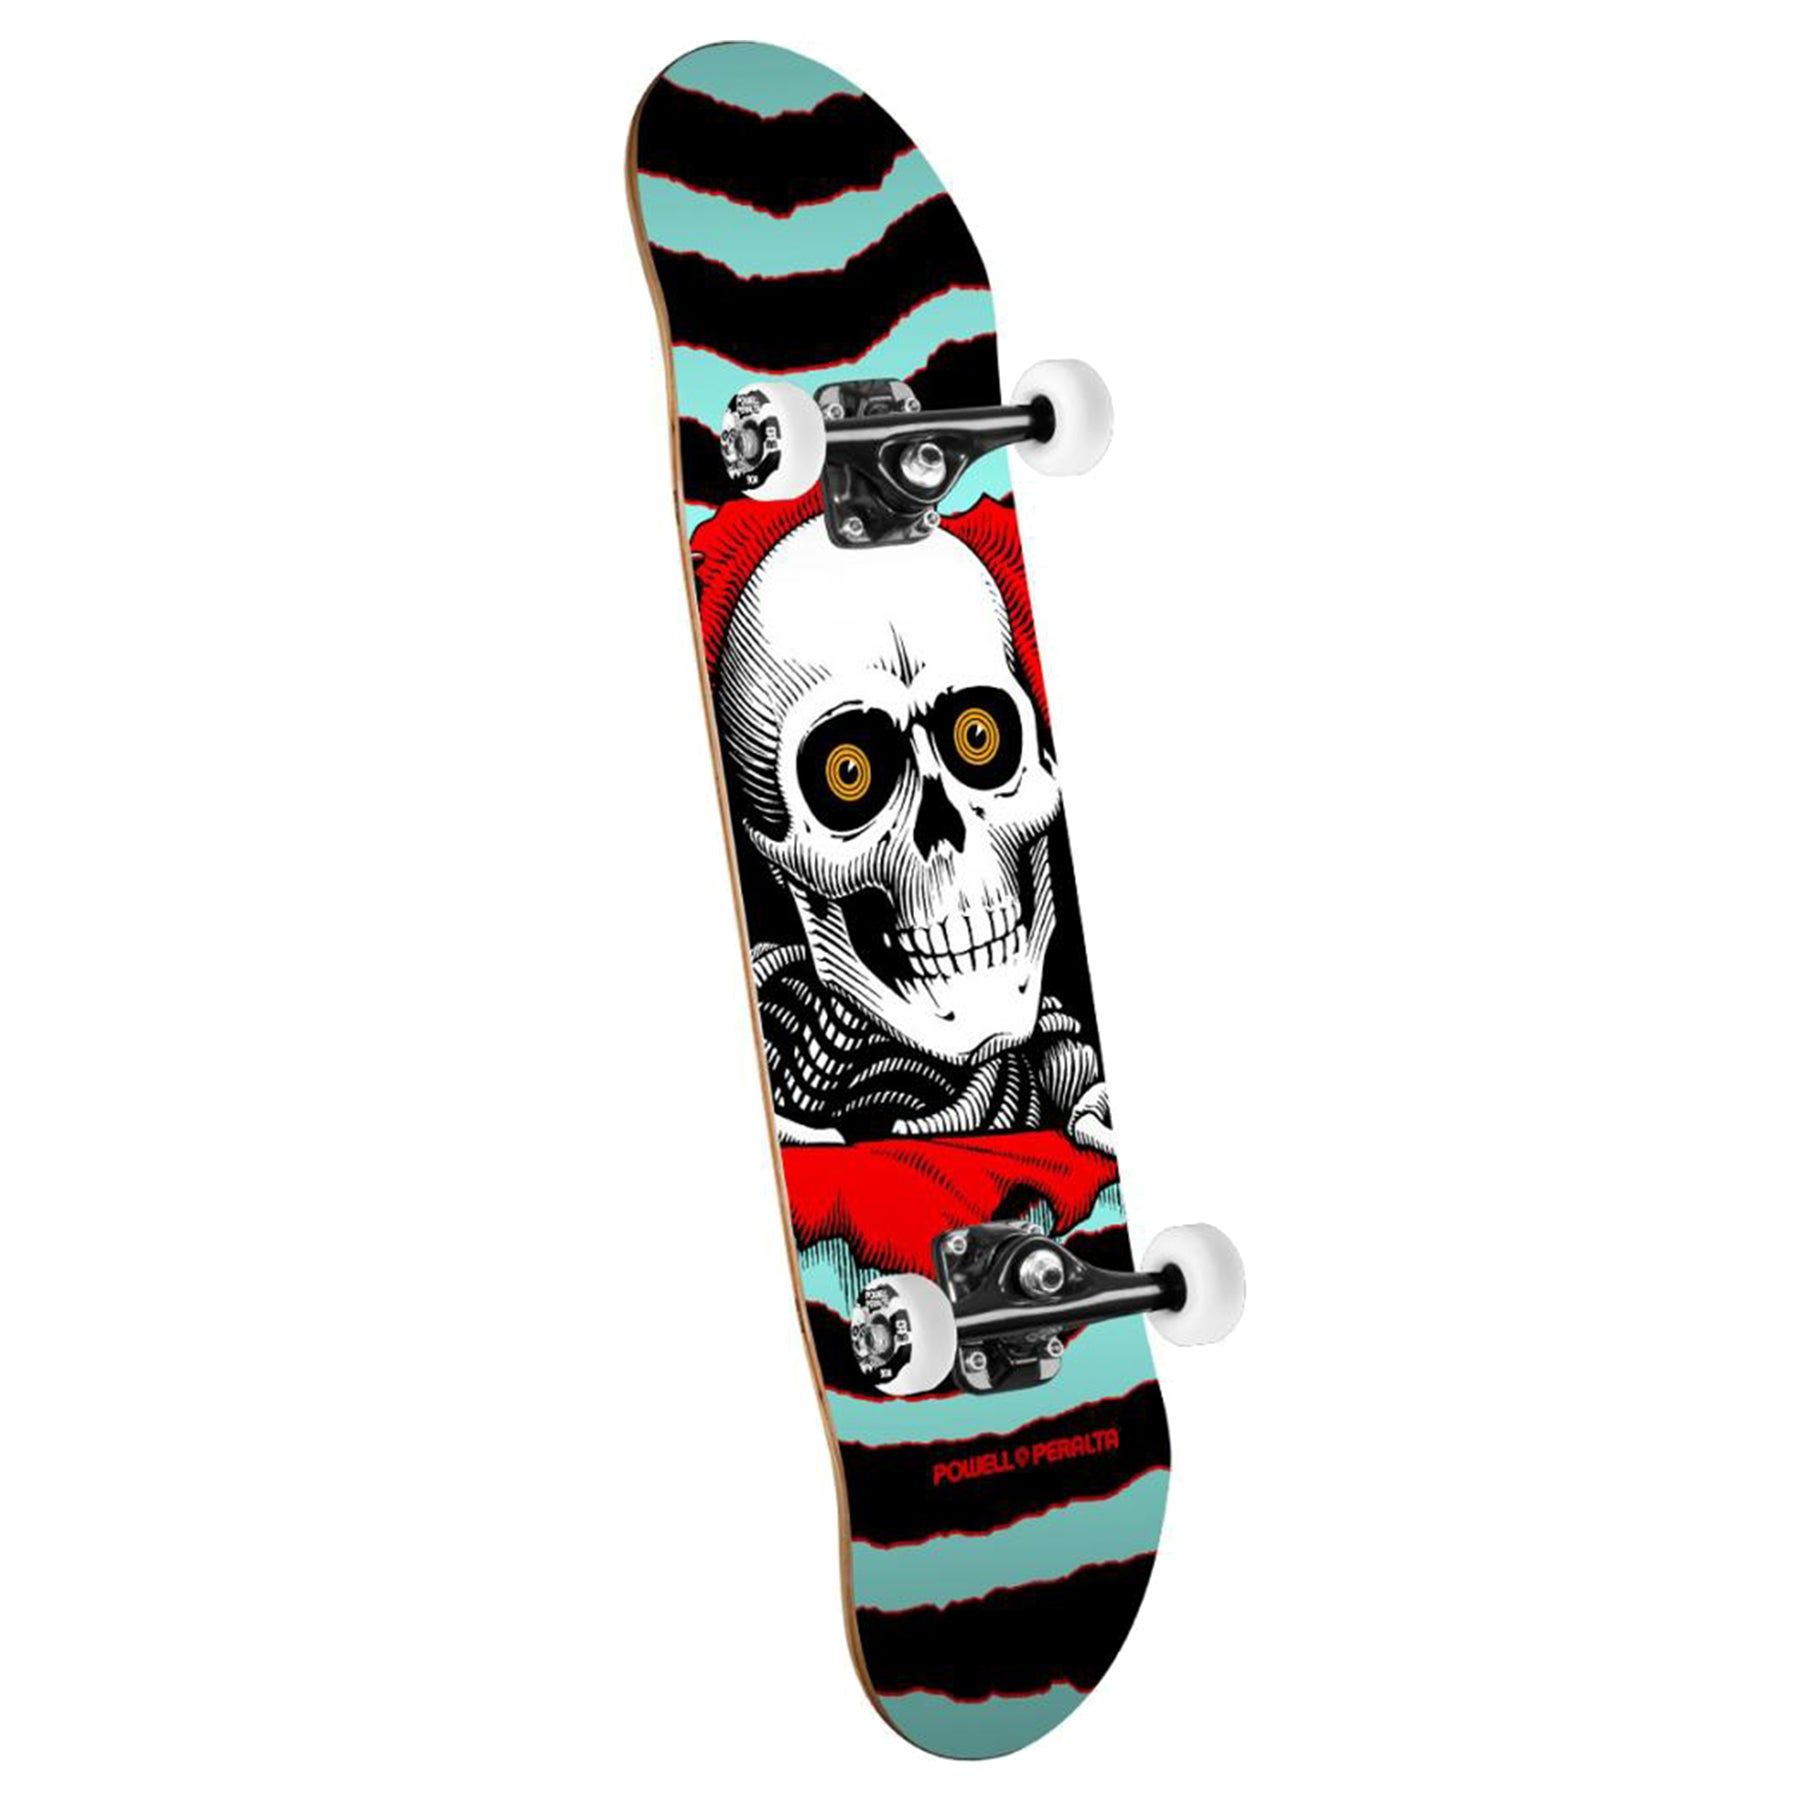 Powell Ripper 7.5 Inch Complete Skateboard - Turquoise/red